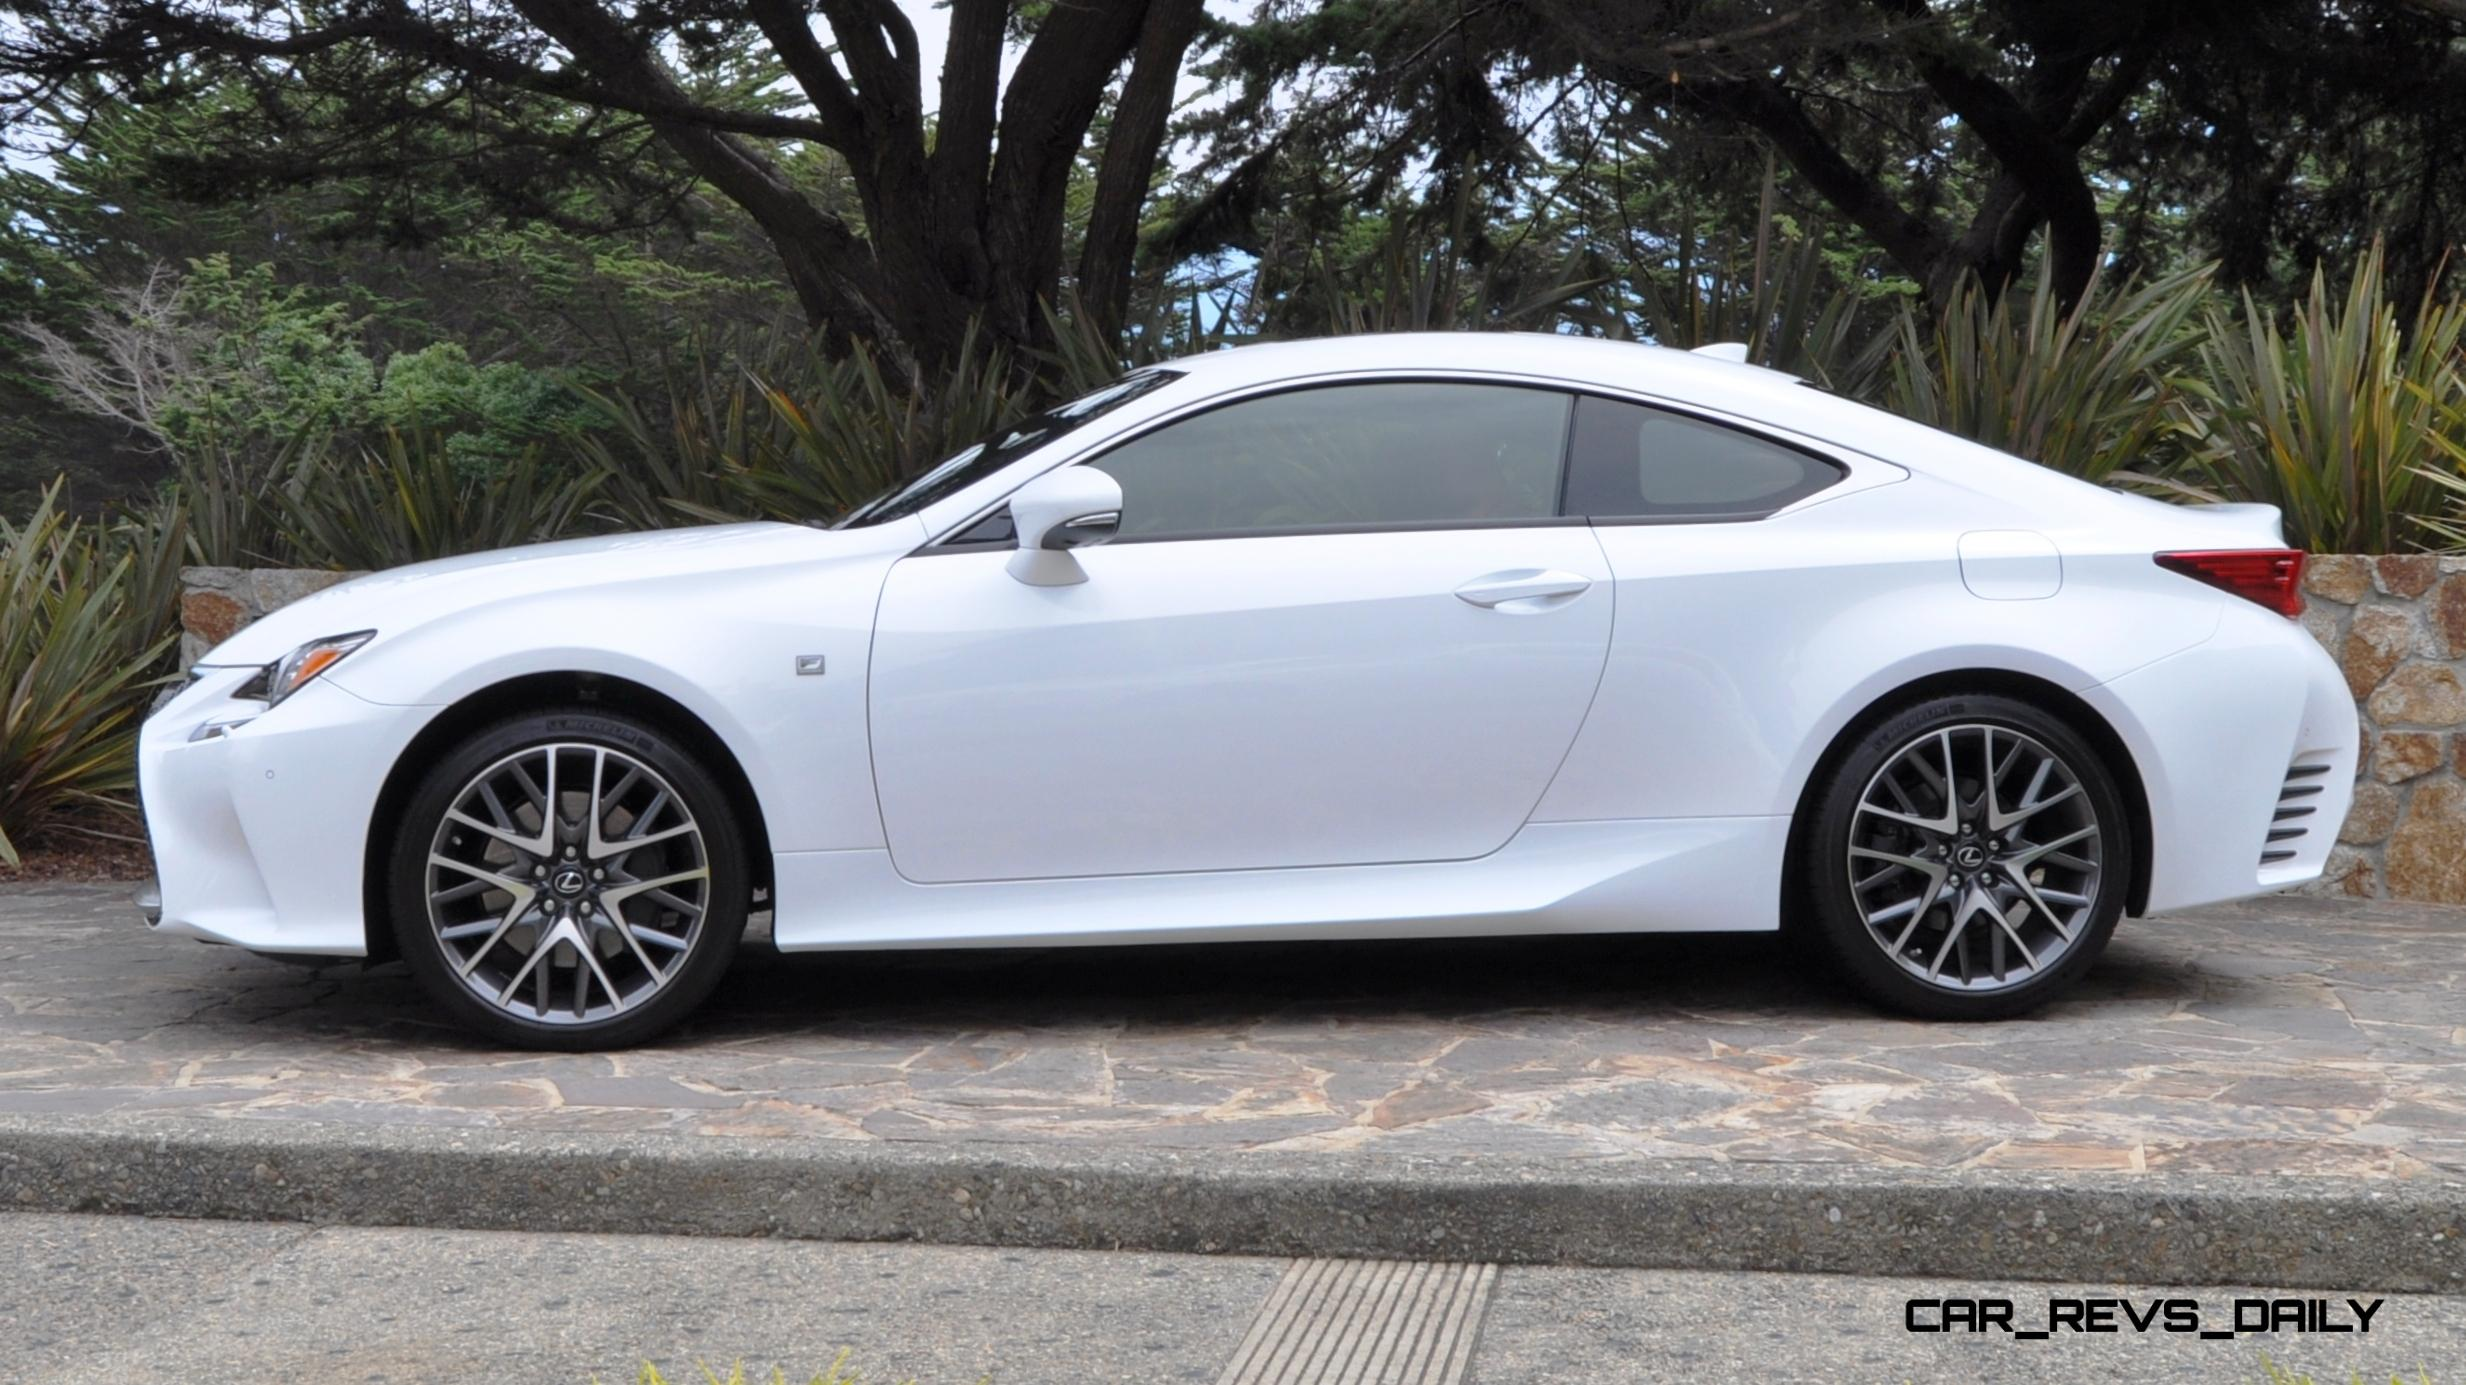 2015 lexus rc350 f sport exclusive 8 speed auto awd 4ws and adaptive suspension. Black Bedroom Furniture Sets. Home Design Ideas